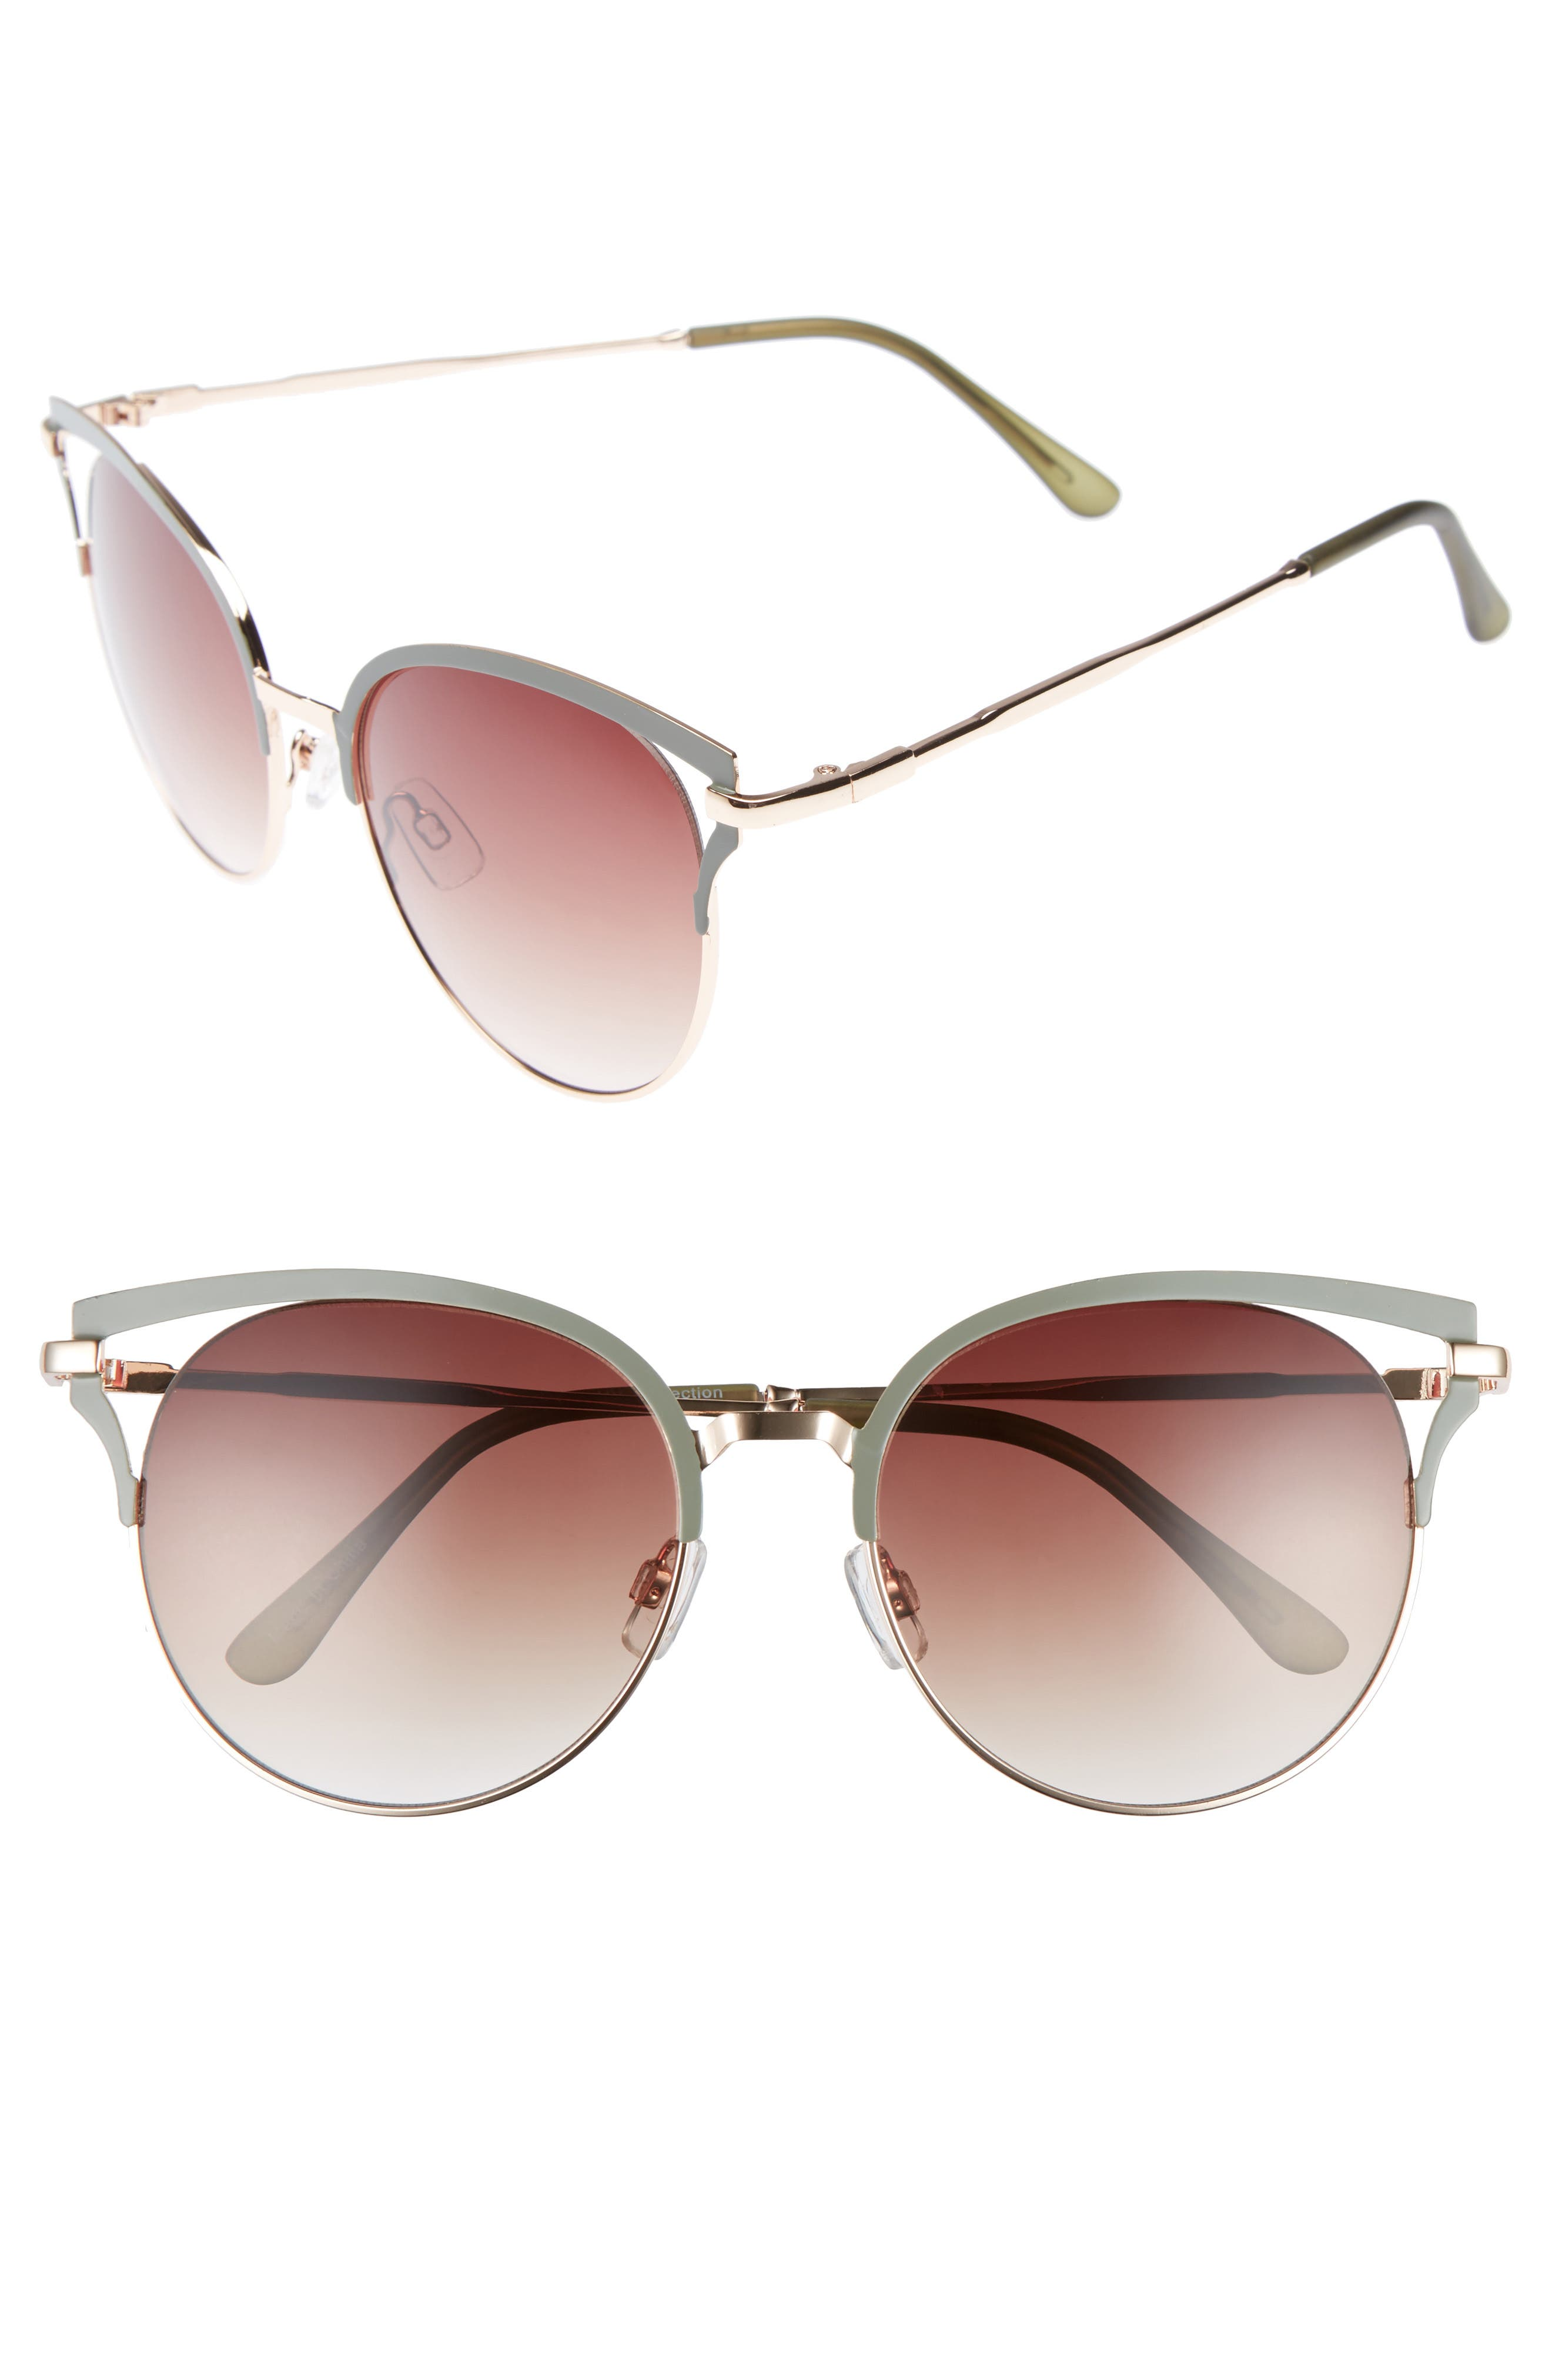 55mm Colored Round Sunglasses,                         Main,                         color, 300